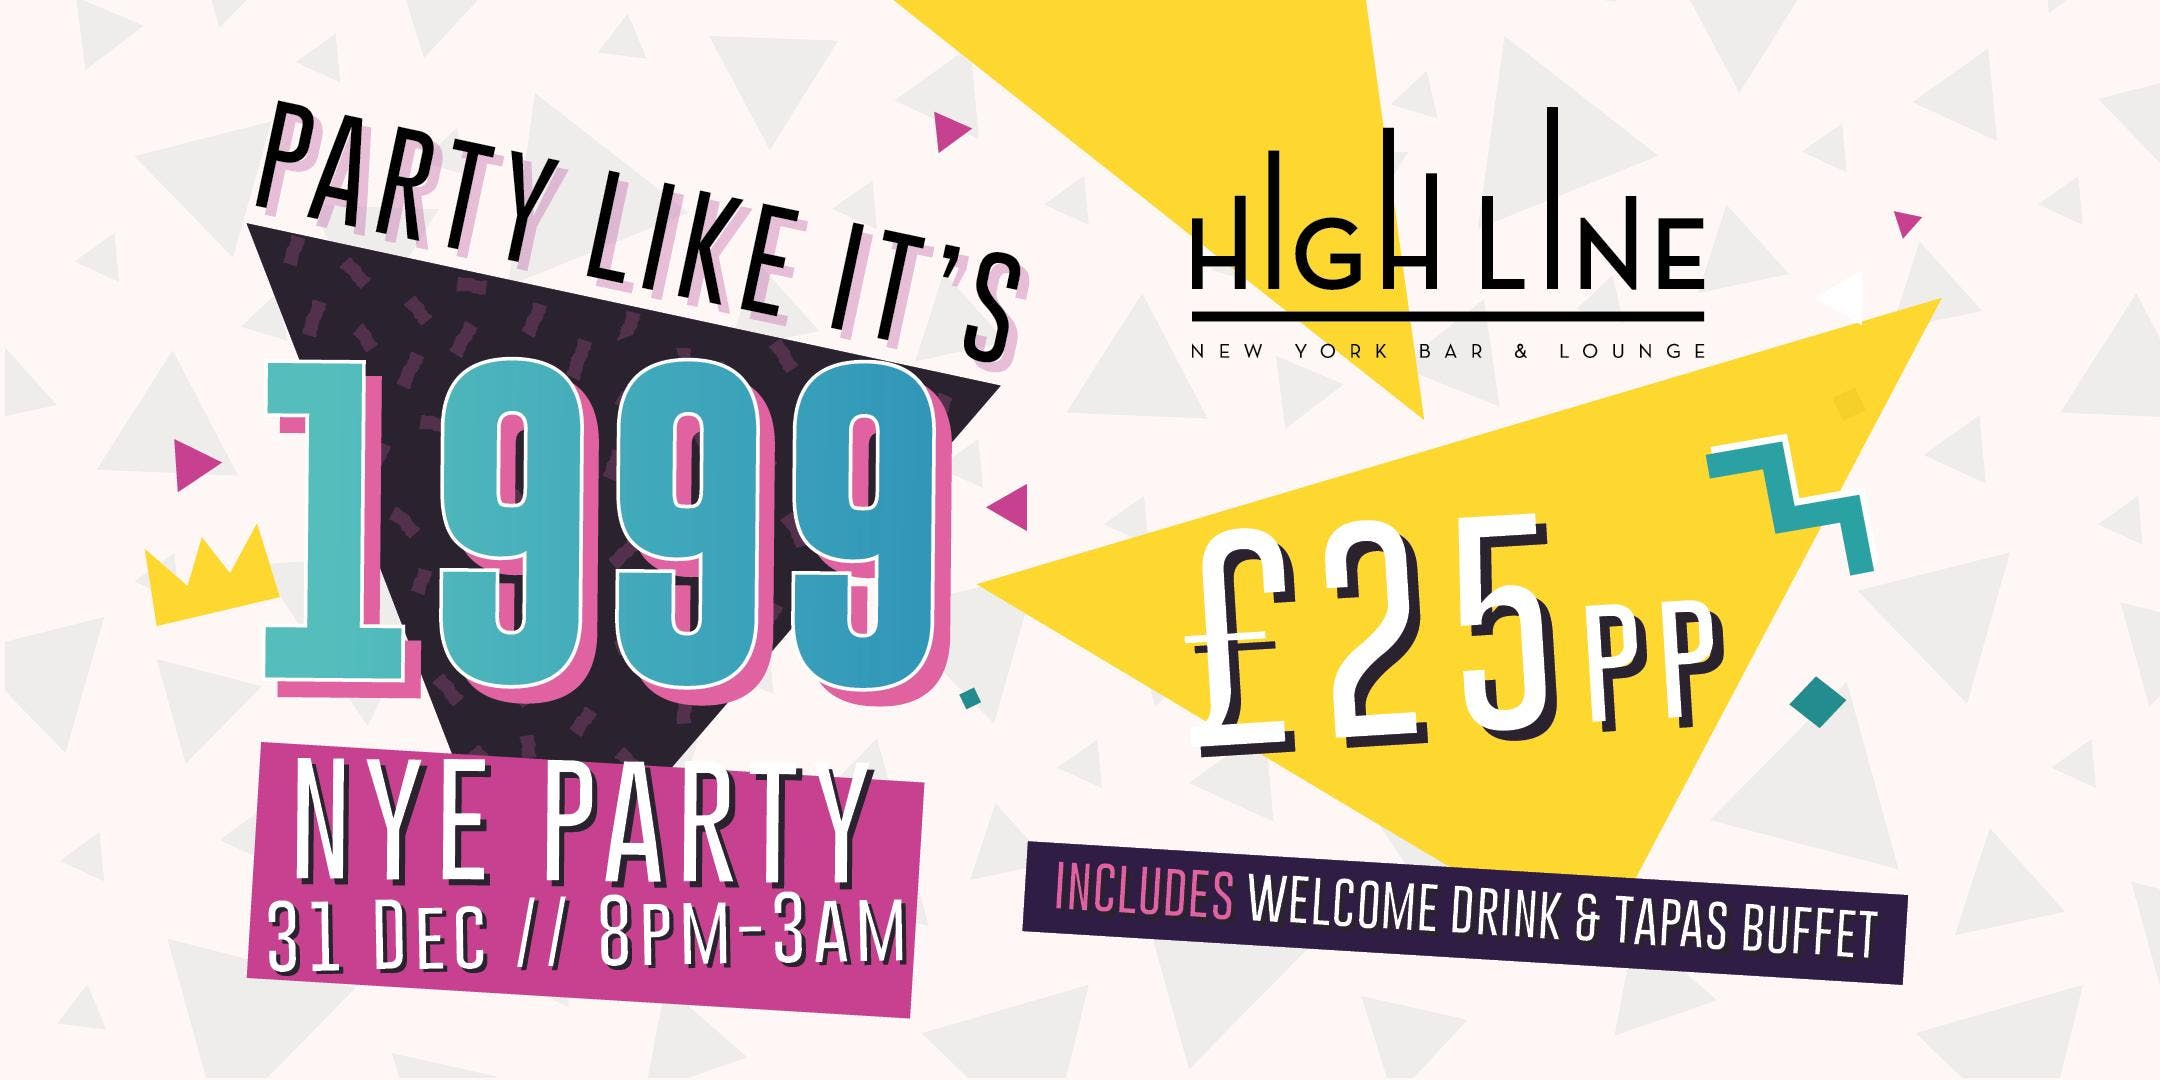 Party like its 1999 at High Line - NYE Party 2019